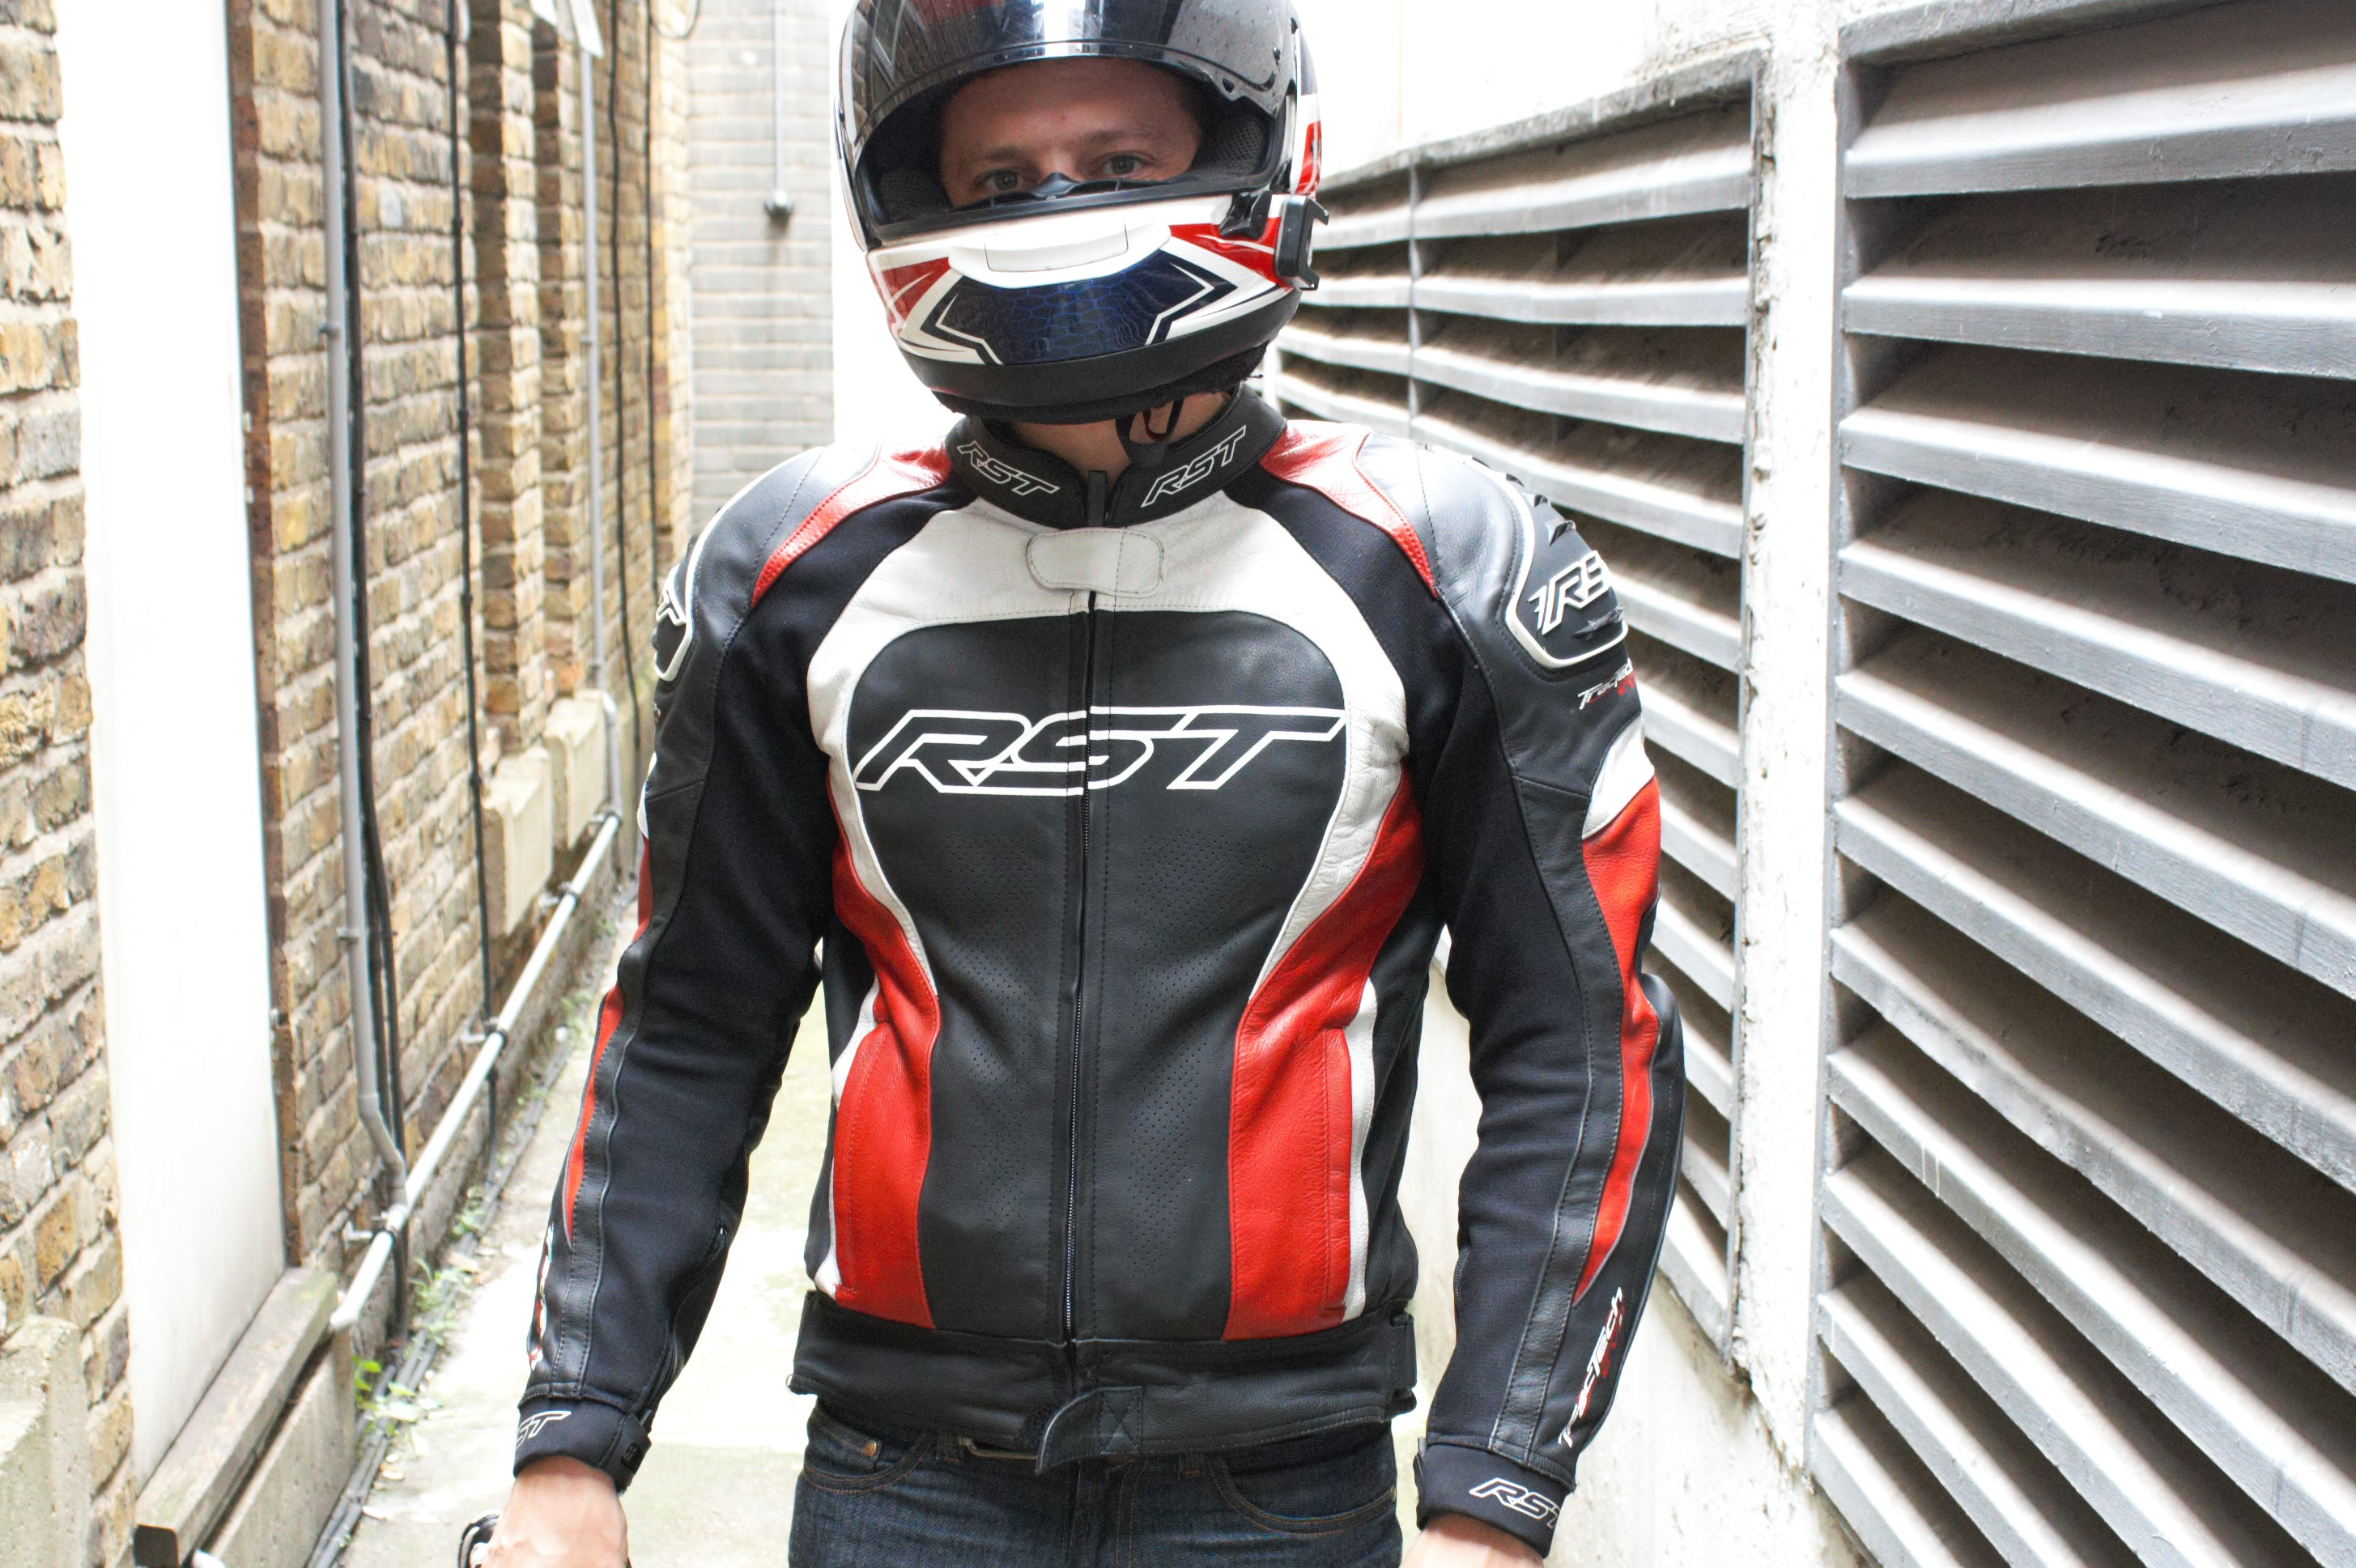 Rst Tractech Evo 2 Jacket Review Visordown